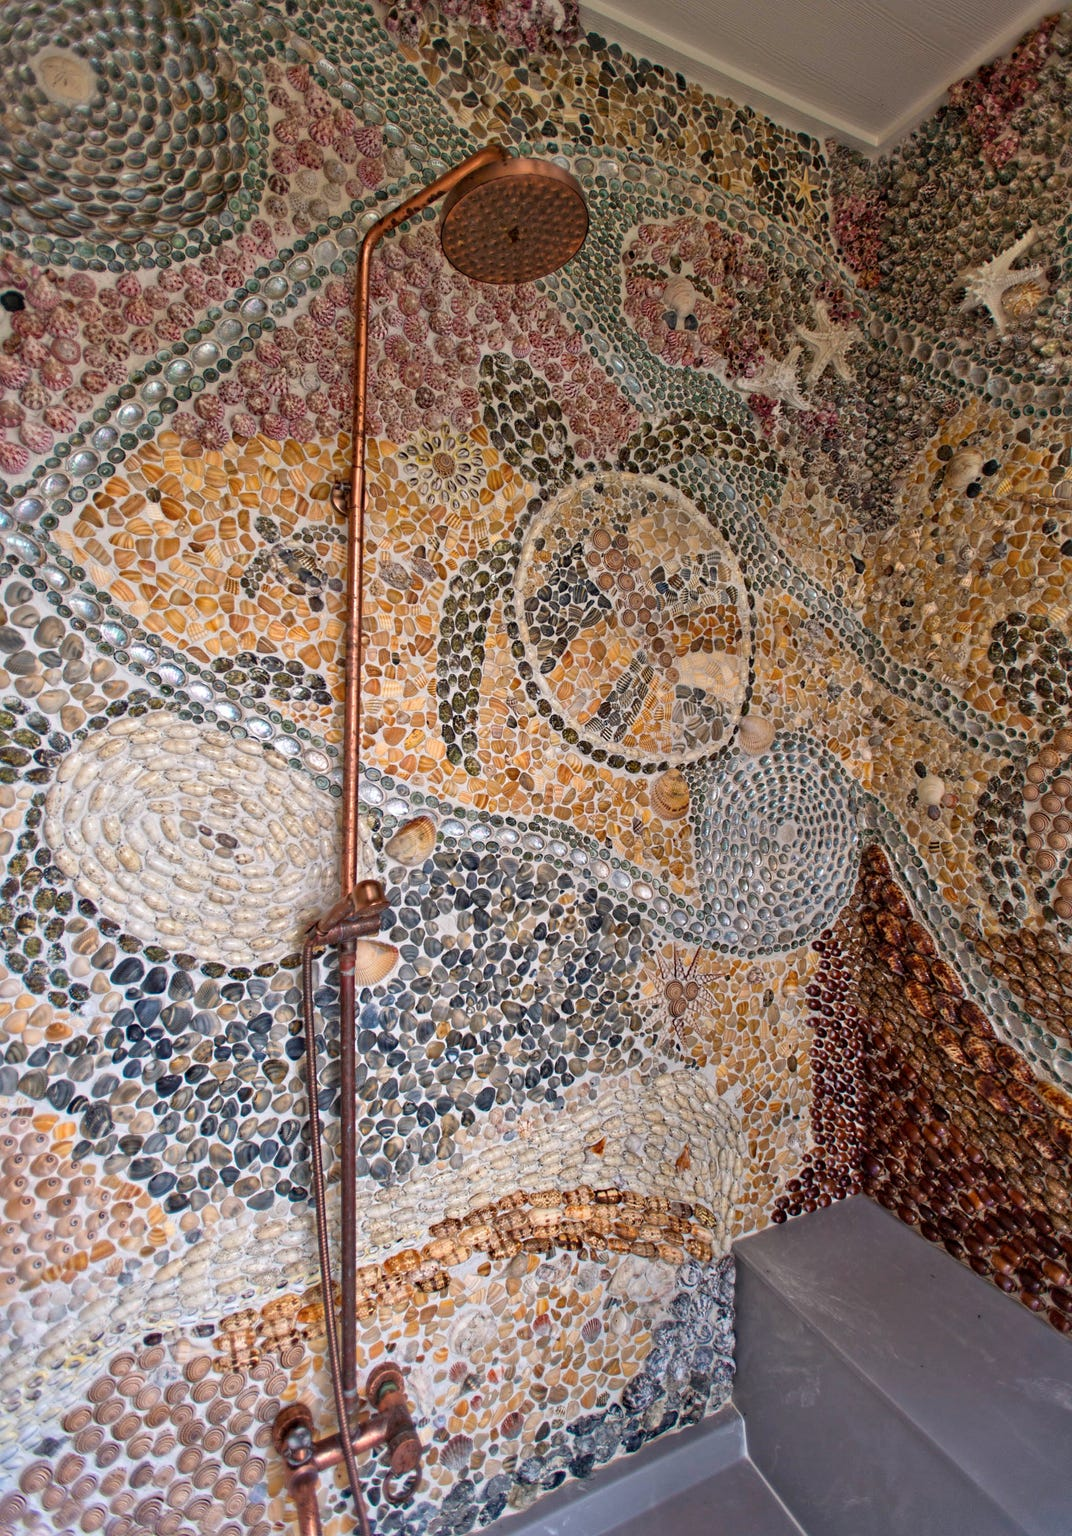 The outdoor shower is a work of art with an invalid mosaic of shell and rock with a turtle theme.